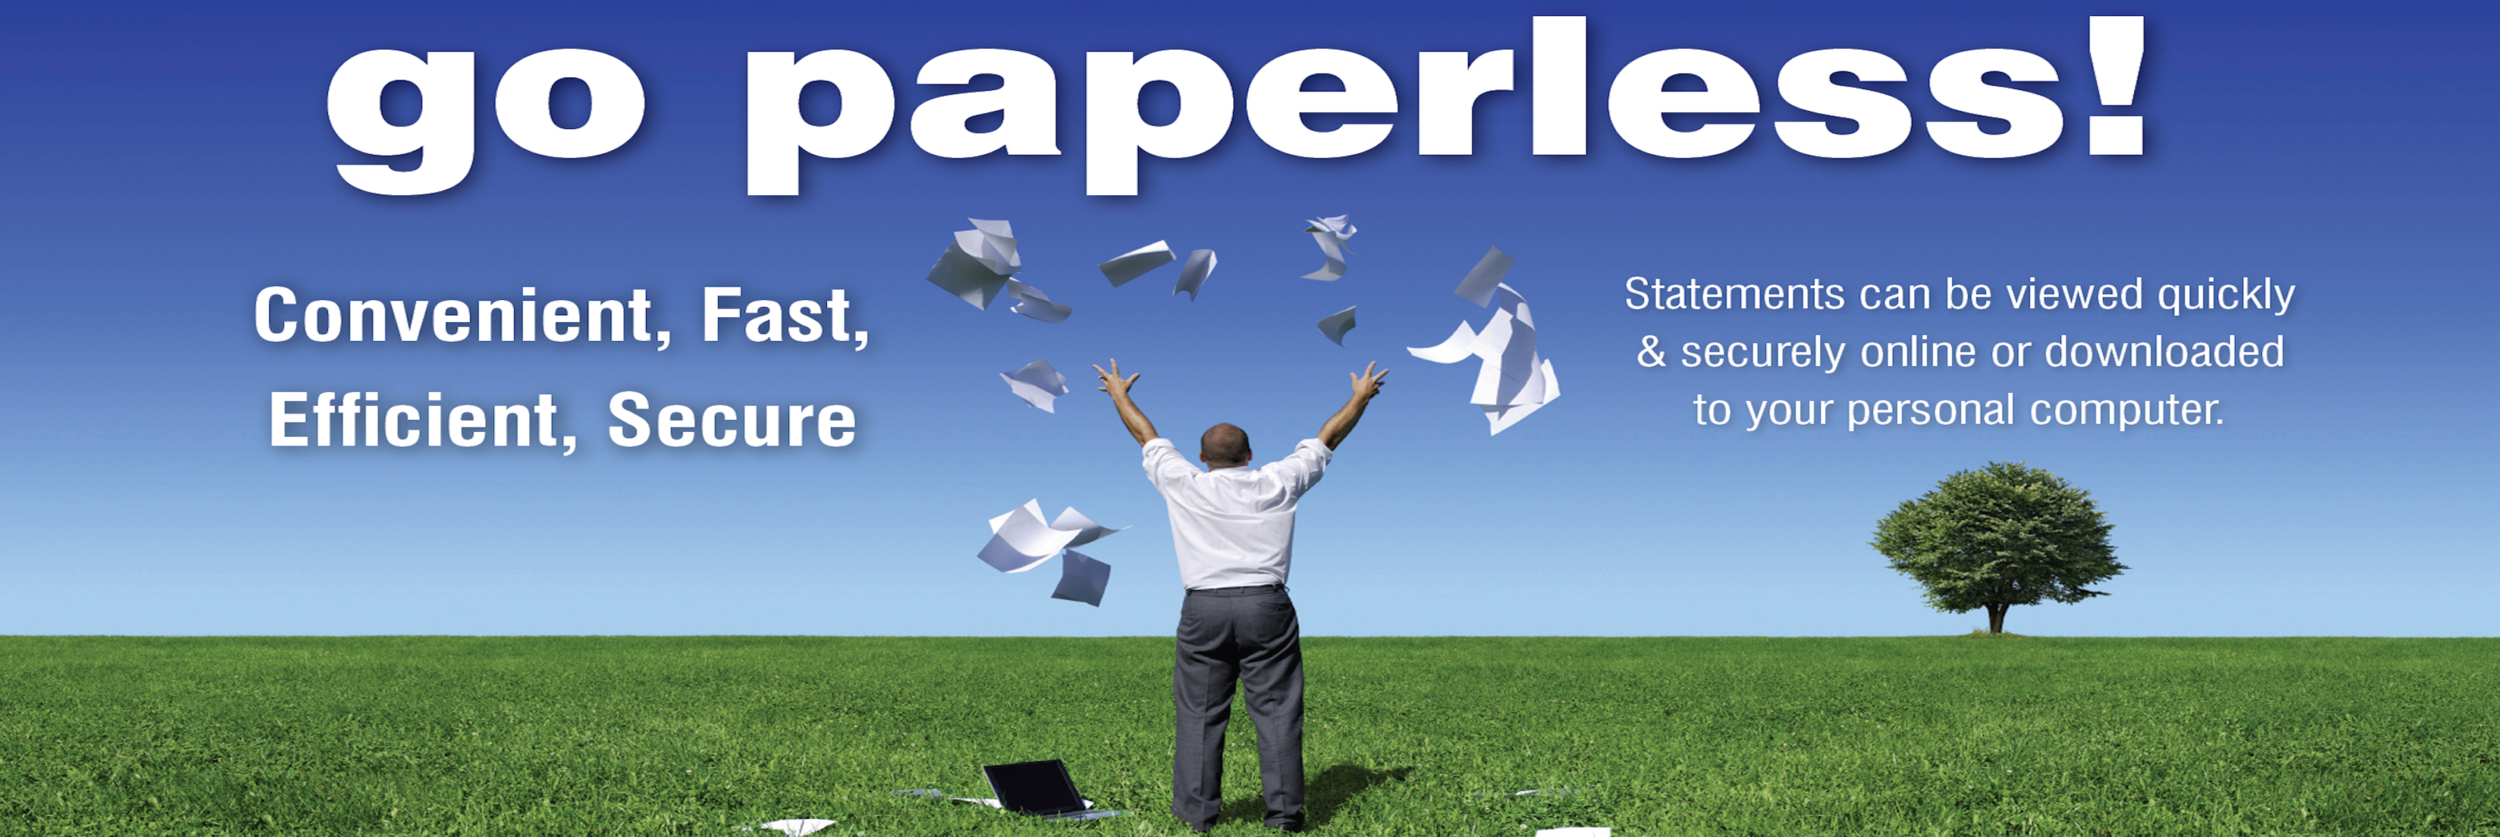 Paperless.png